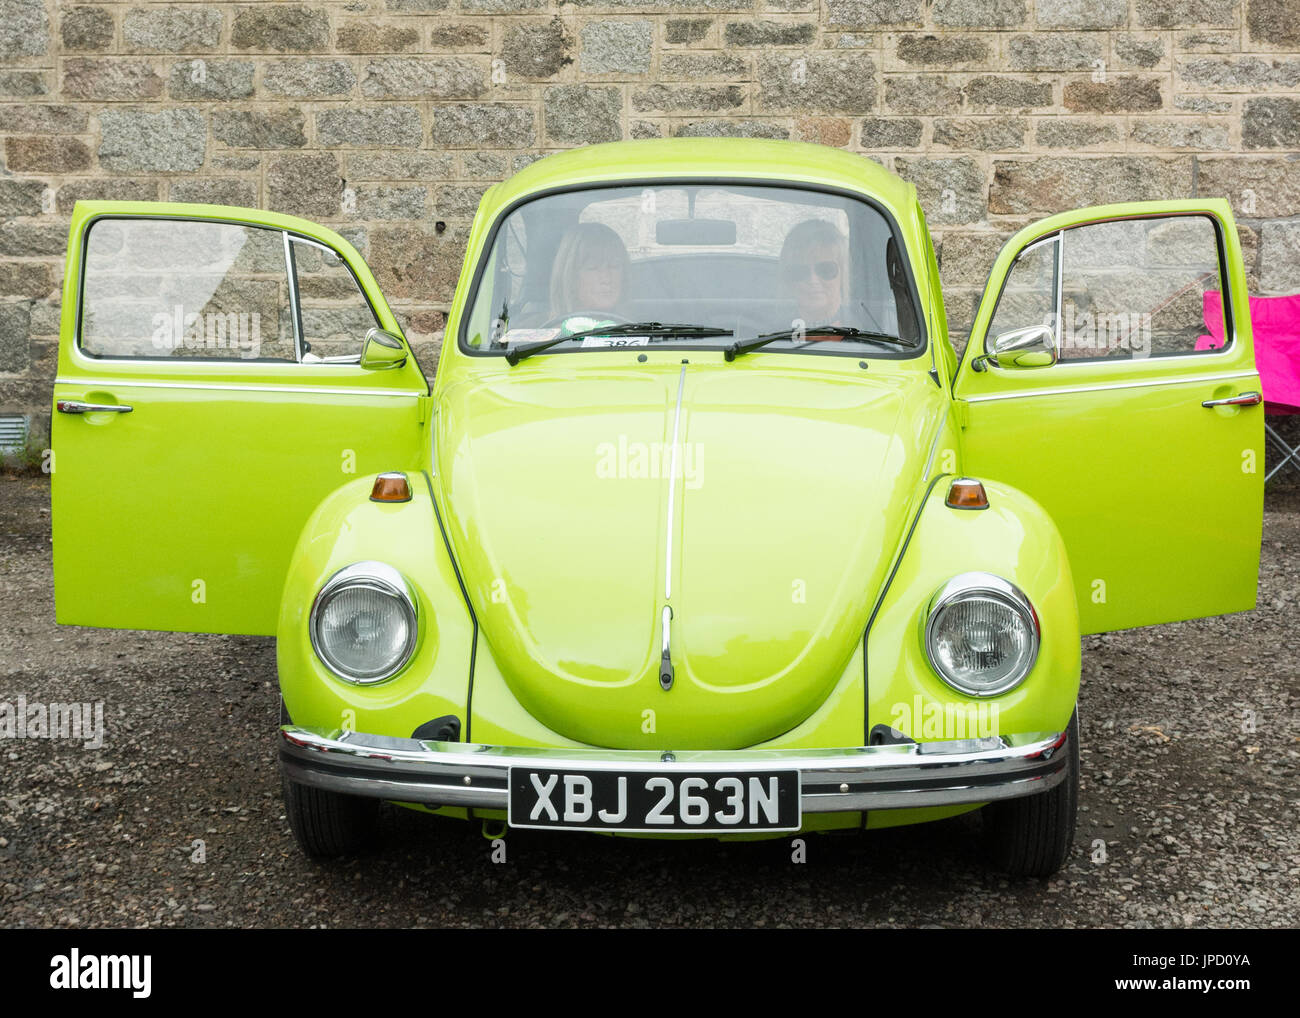 vw beetle car lime green 1974 at Motormania car show in Grantown-on-Spey, Scotland, UK - Stock Image